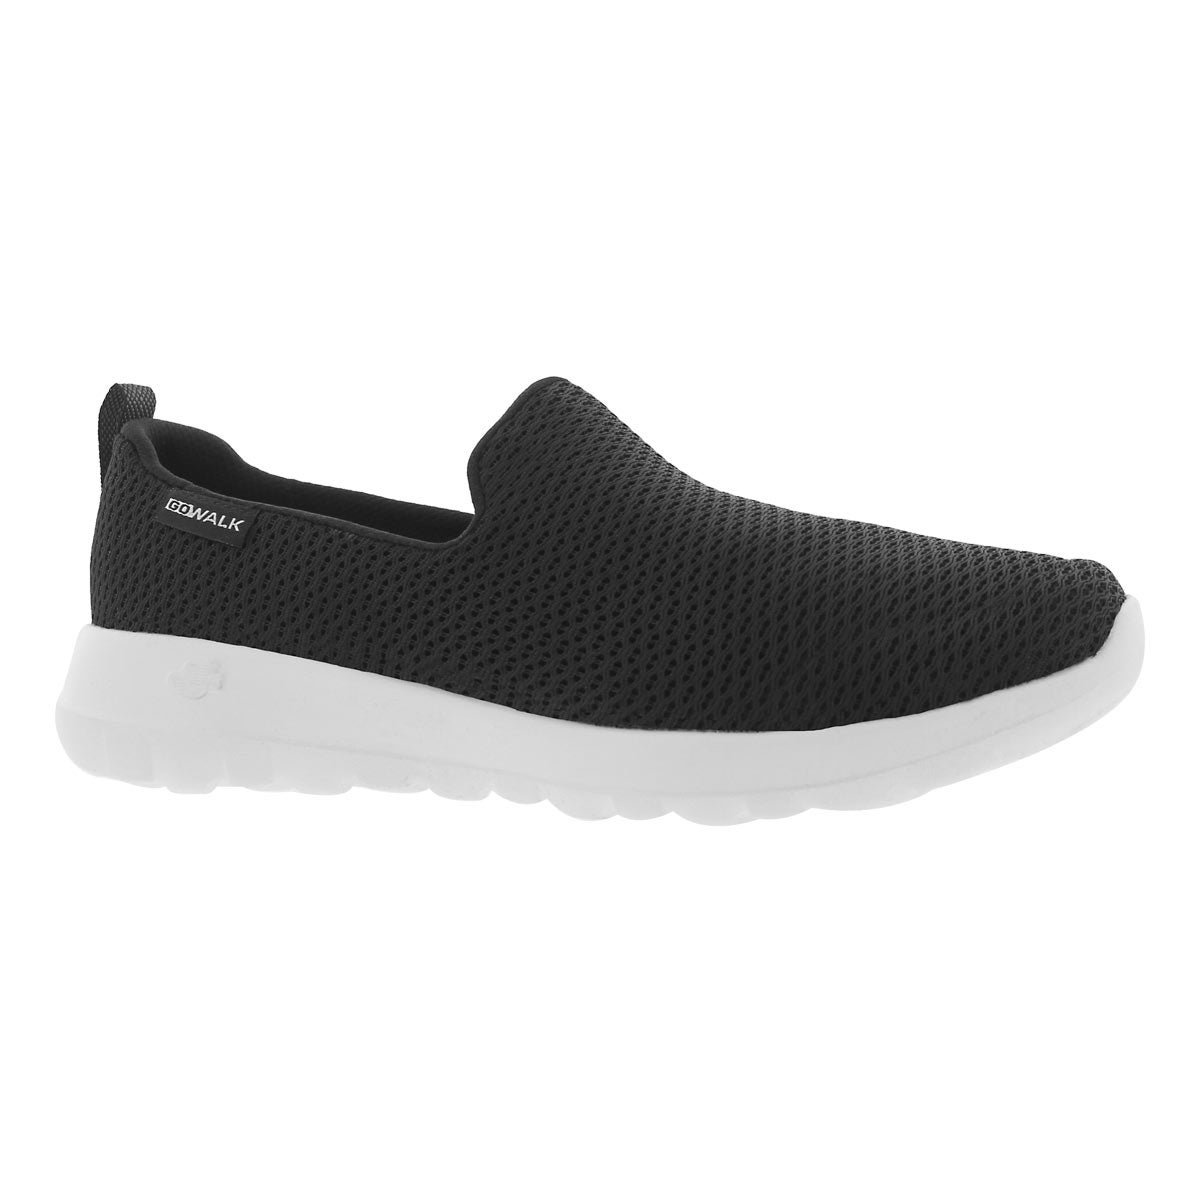 Lds GOwalk Joy blk/wht slip on shoe